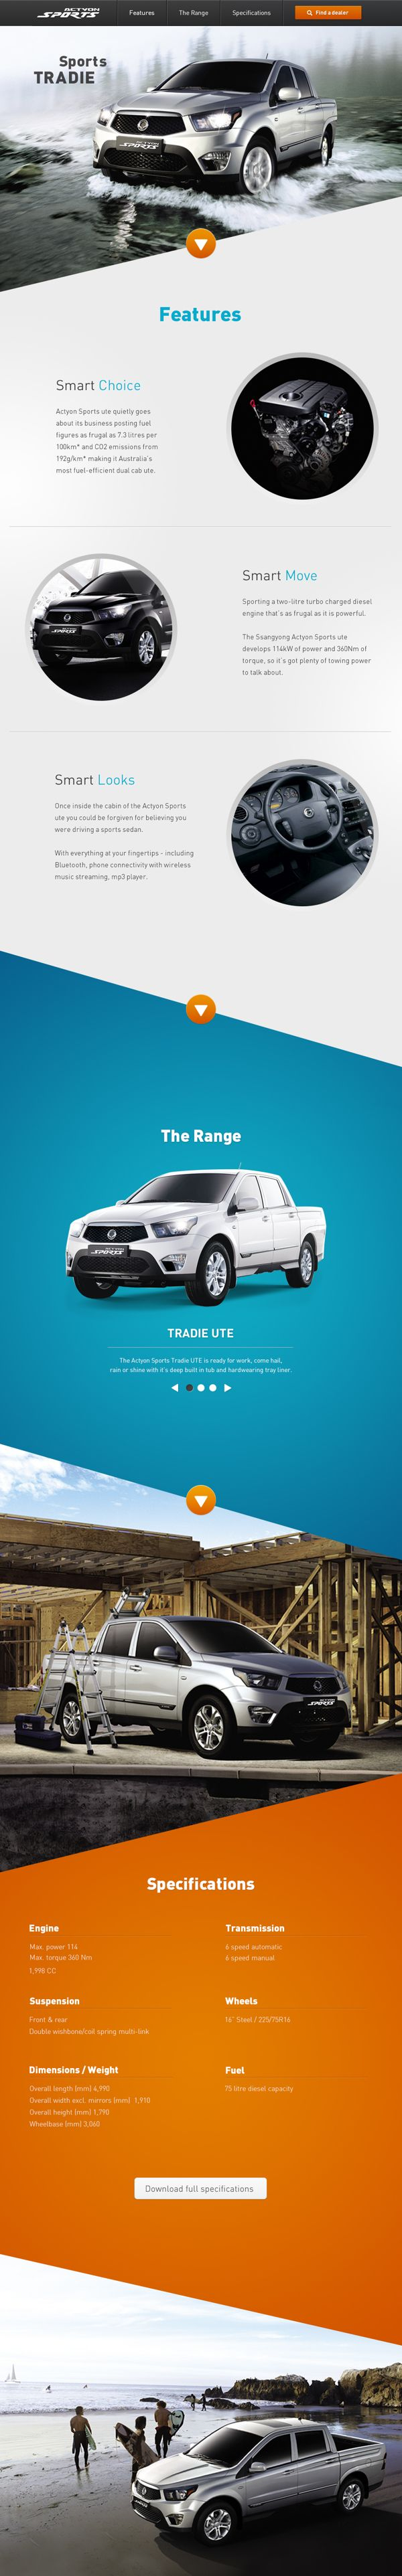 Ssangyong Actyon Sports website on Behance